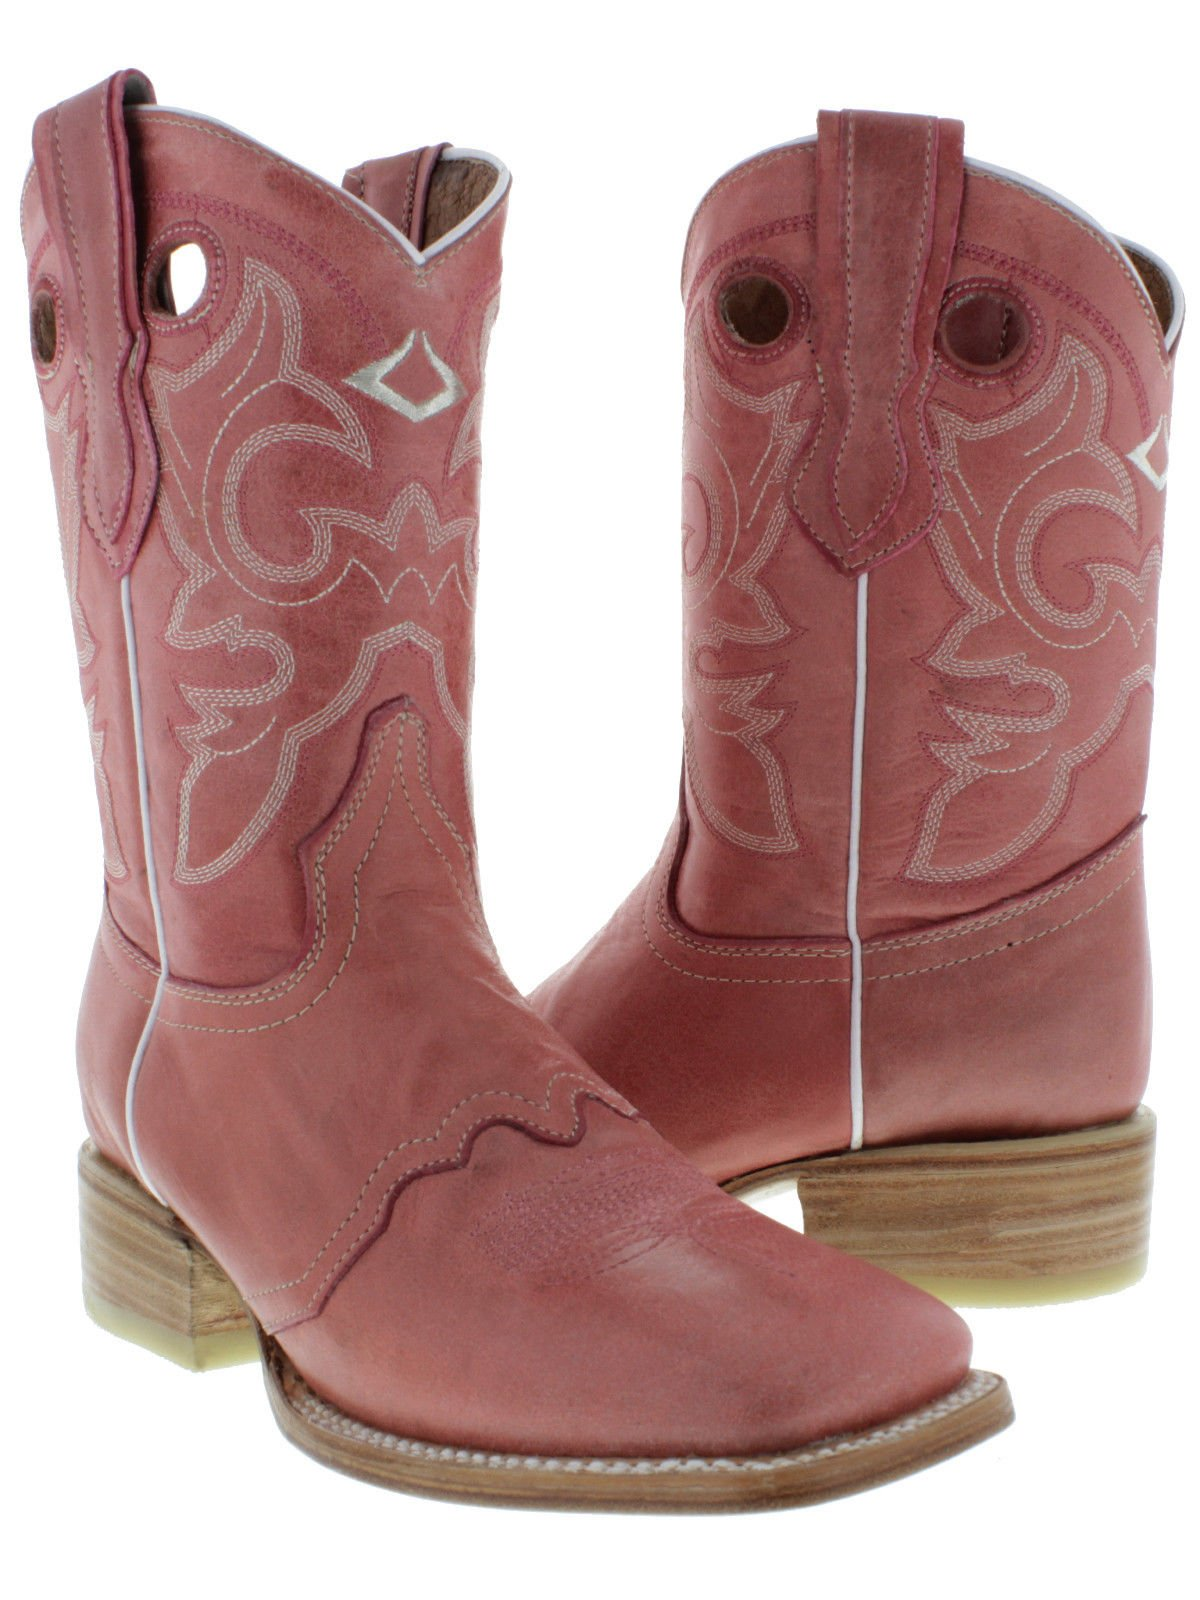 Cowboy Professional - Women's Pink Mid Calf Pull On Cowboy Boots Square Toe 10.5 BM